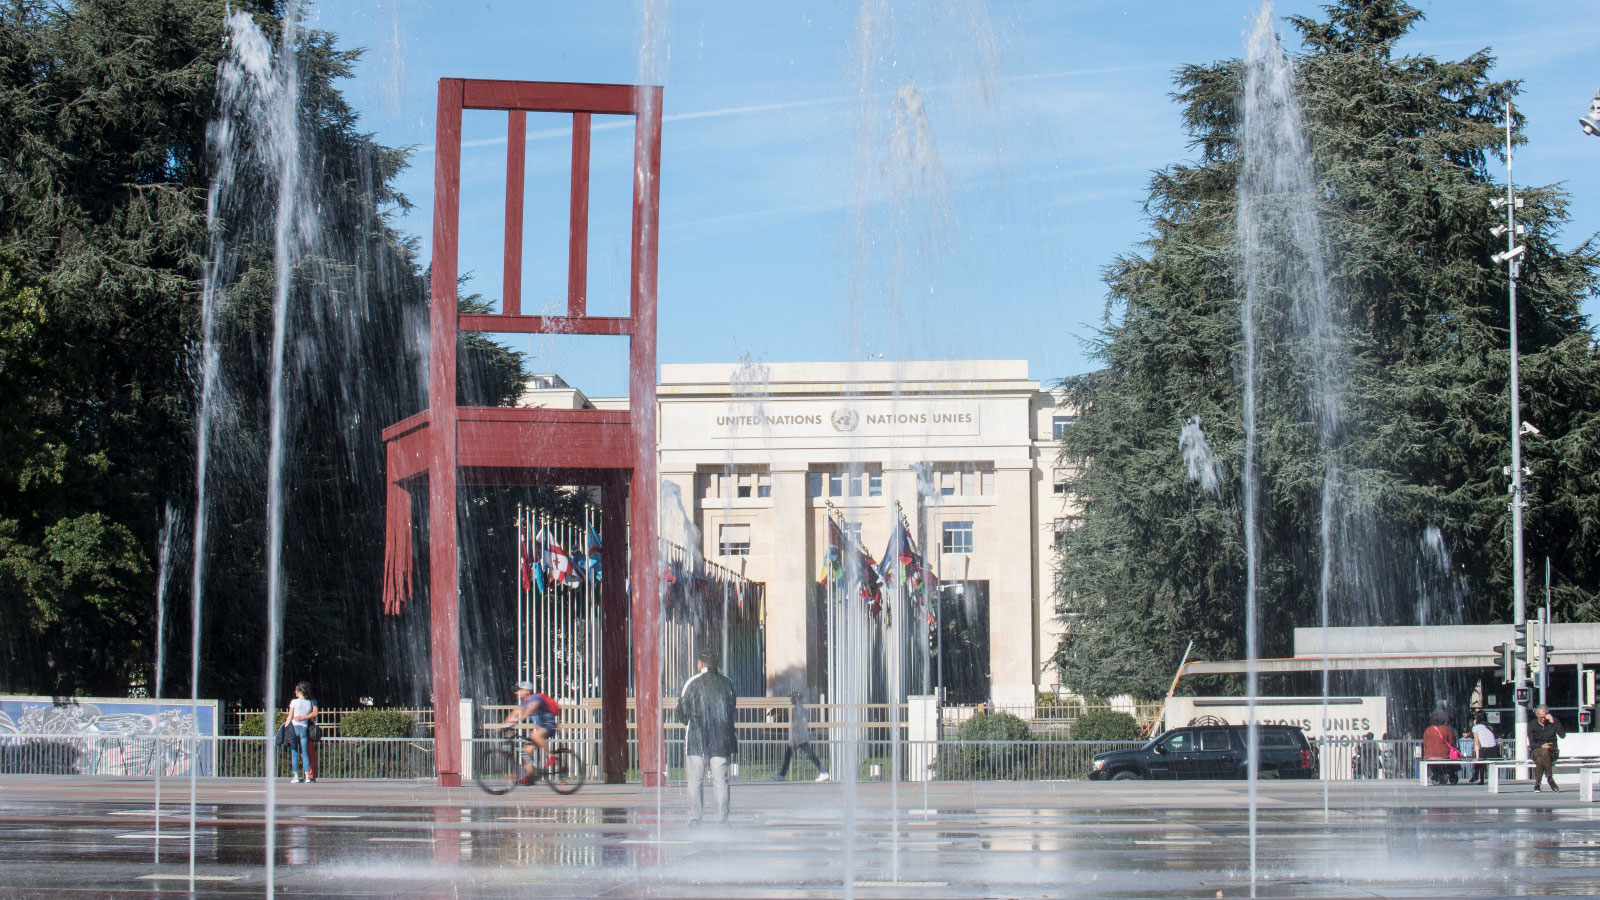 The-Broken-Chair-monument-stands-39-feet-tall-at-the-Place-des-Nations -in-front-of-the-United-Nations-headquarters-in-Geneva